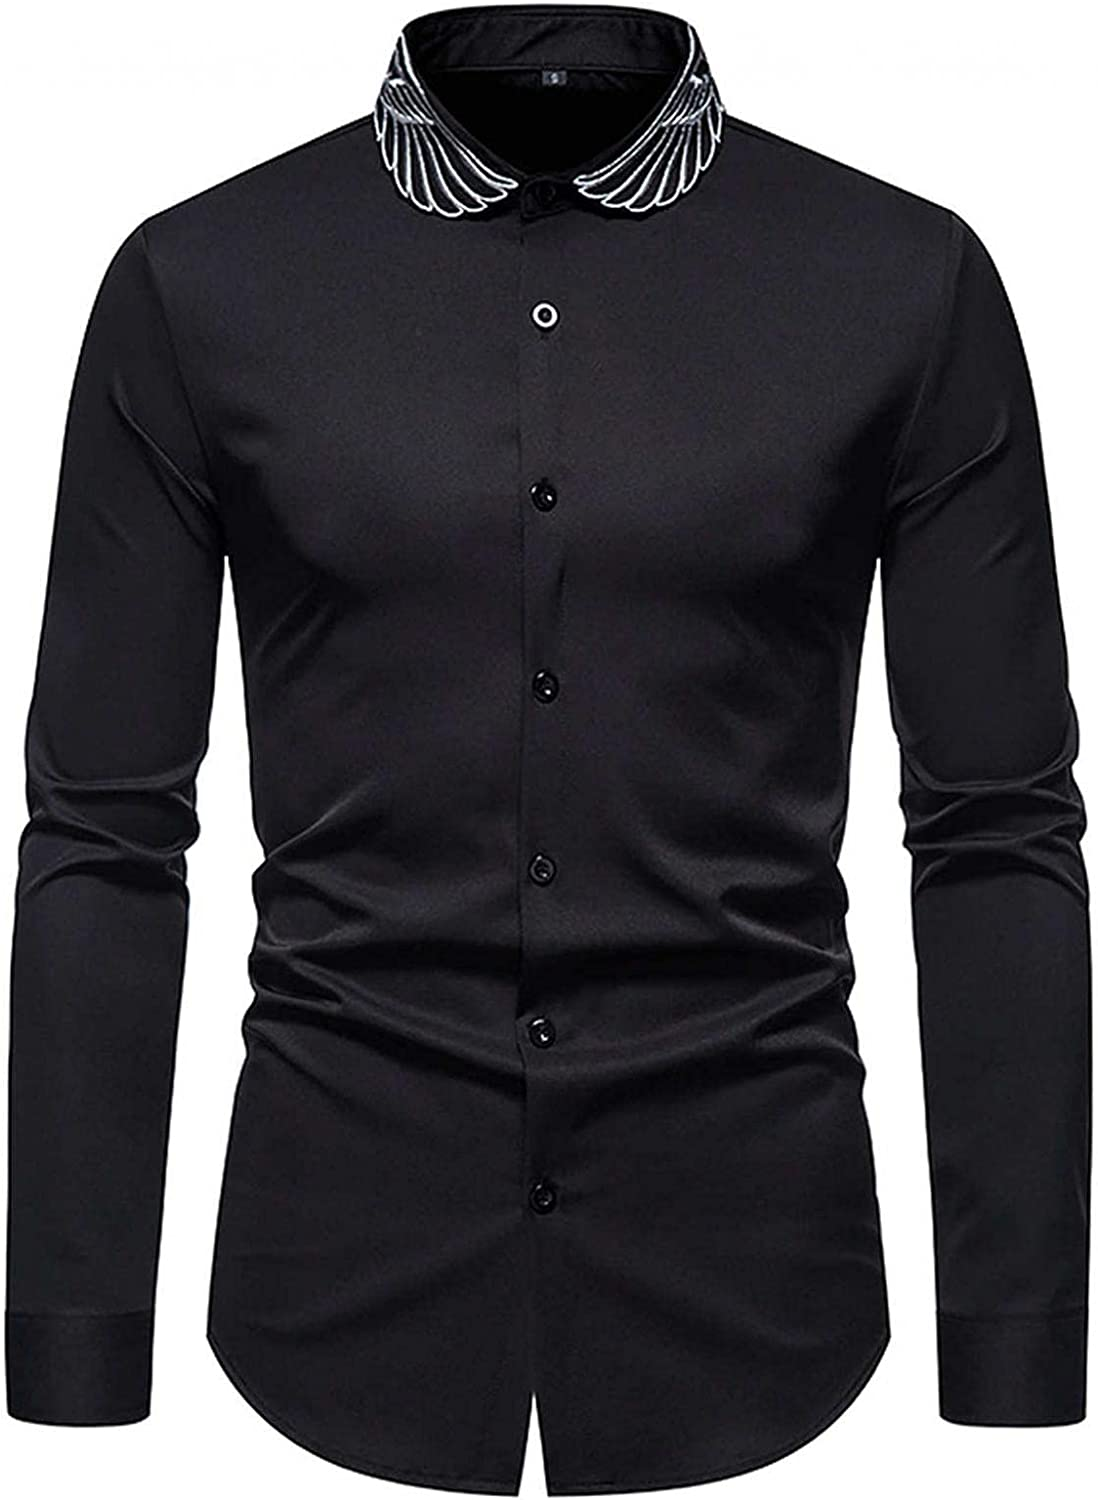 JSPOYOU Men's Long Sleeve Embroidered Shirt Casual Slim Fit Button Down Dress Shirts Big and Tall Western Cowboy Shirt